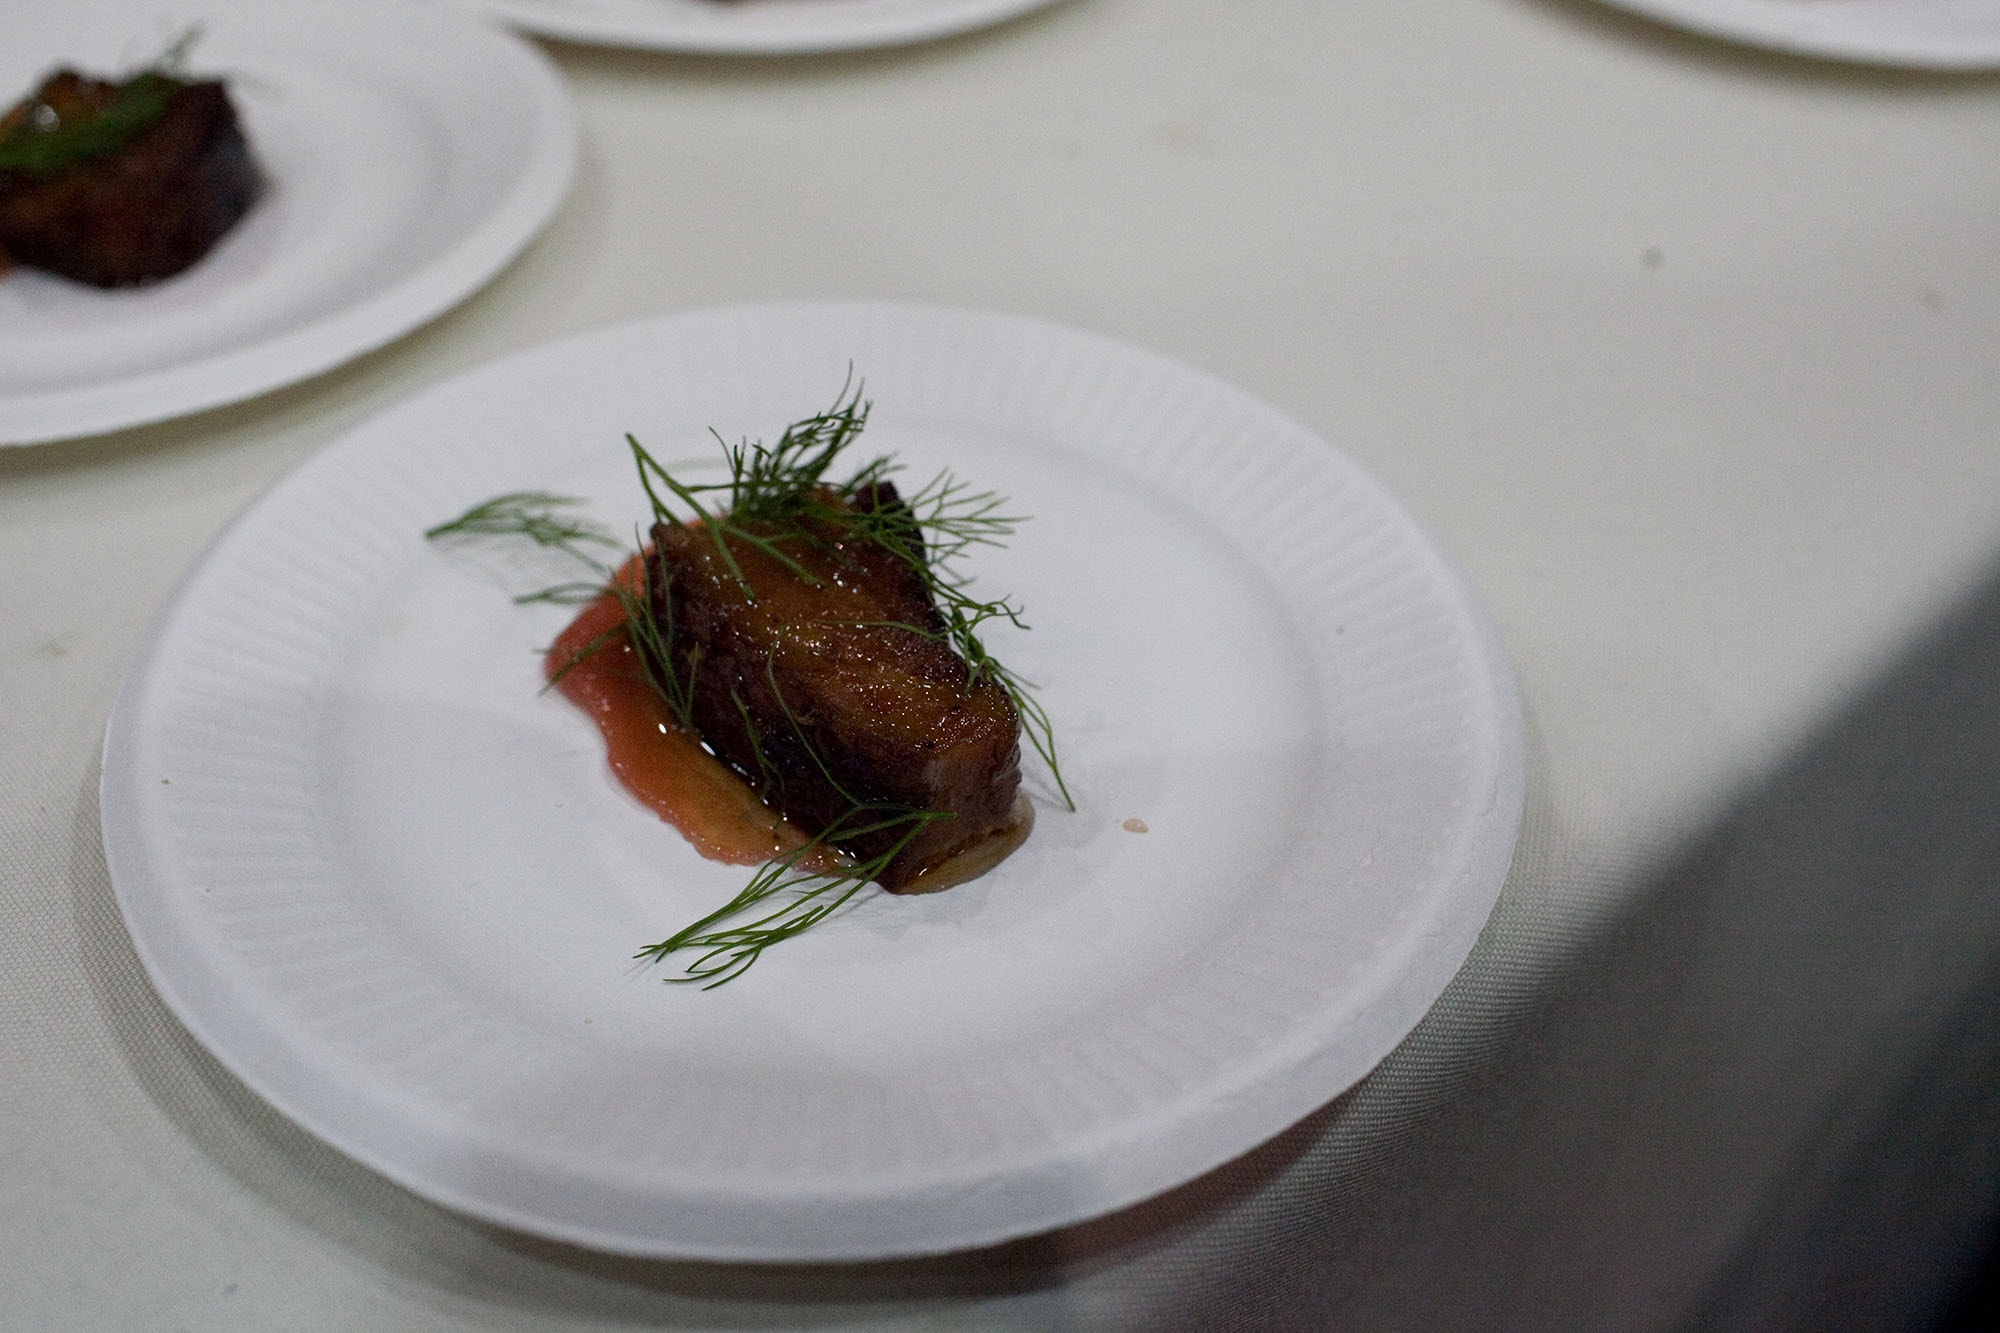 Slow Roasted Slab Bacon with Rhubarb and Burton's Sorghum from Naha at Baconfest Chicago